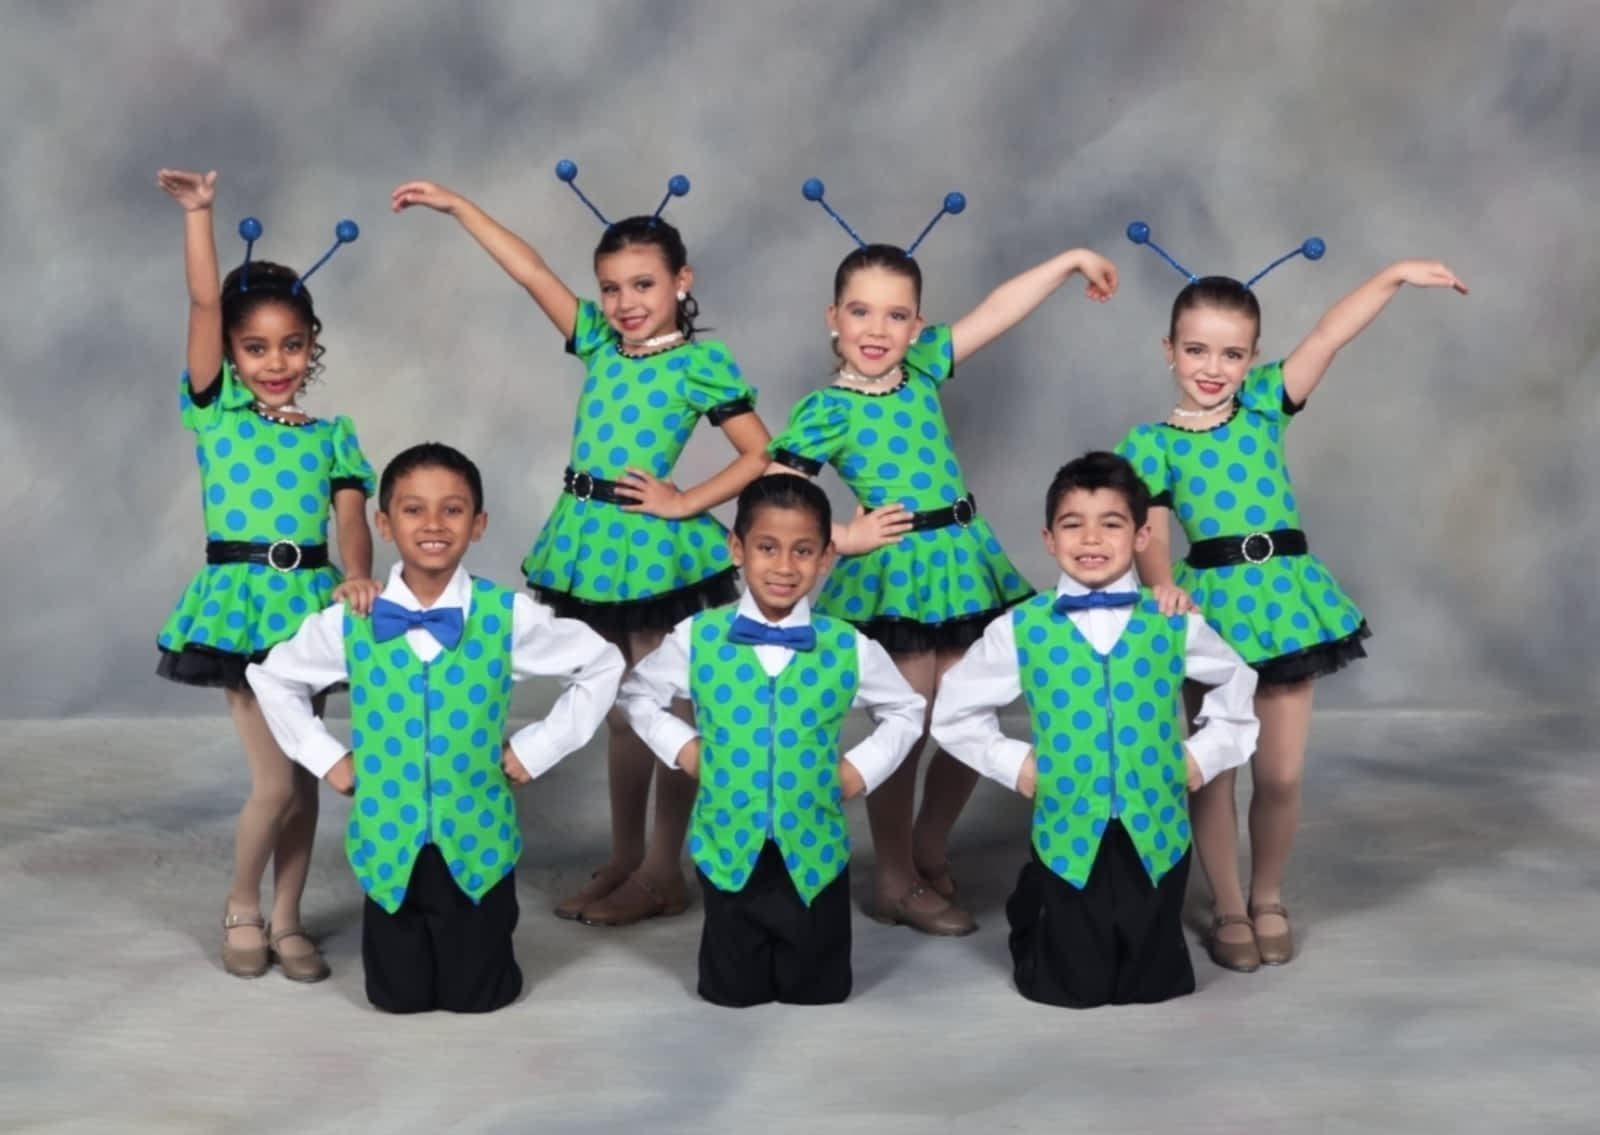 72e94b11c5d4 Kicks Dance Studio - Opening Hours - 50 Bullock Dr, Markham, ON